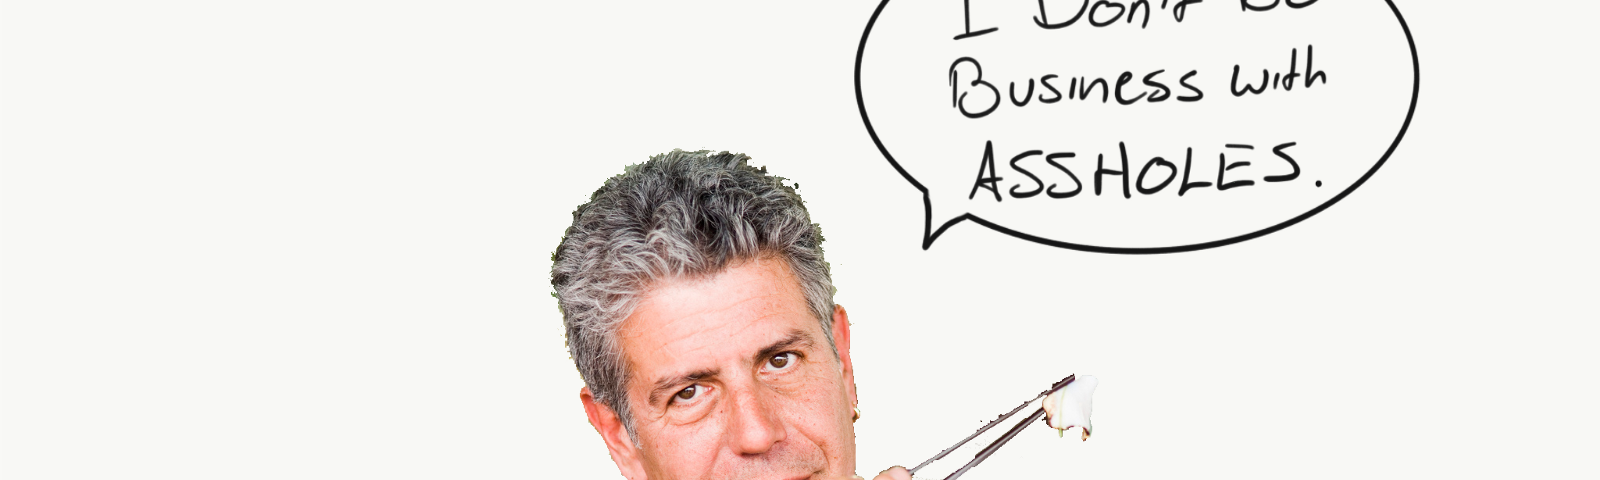 feed8322839 Anthony Bourdain s  No Asshole  Rule  Why Life s Too Short To Work With Them